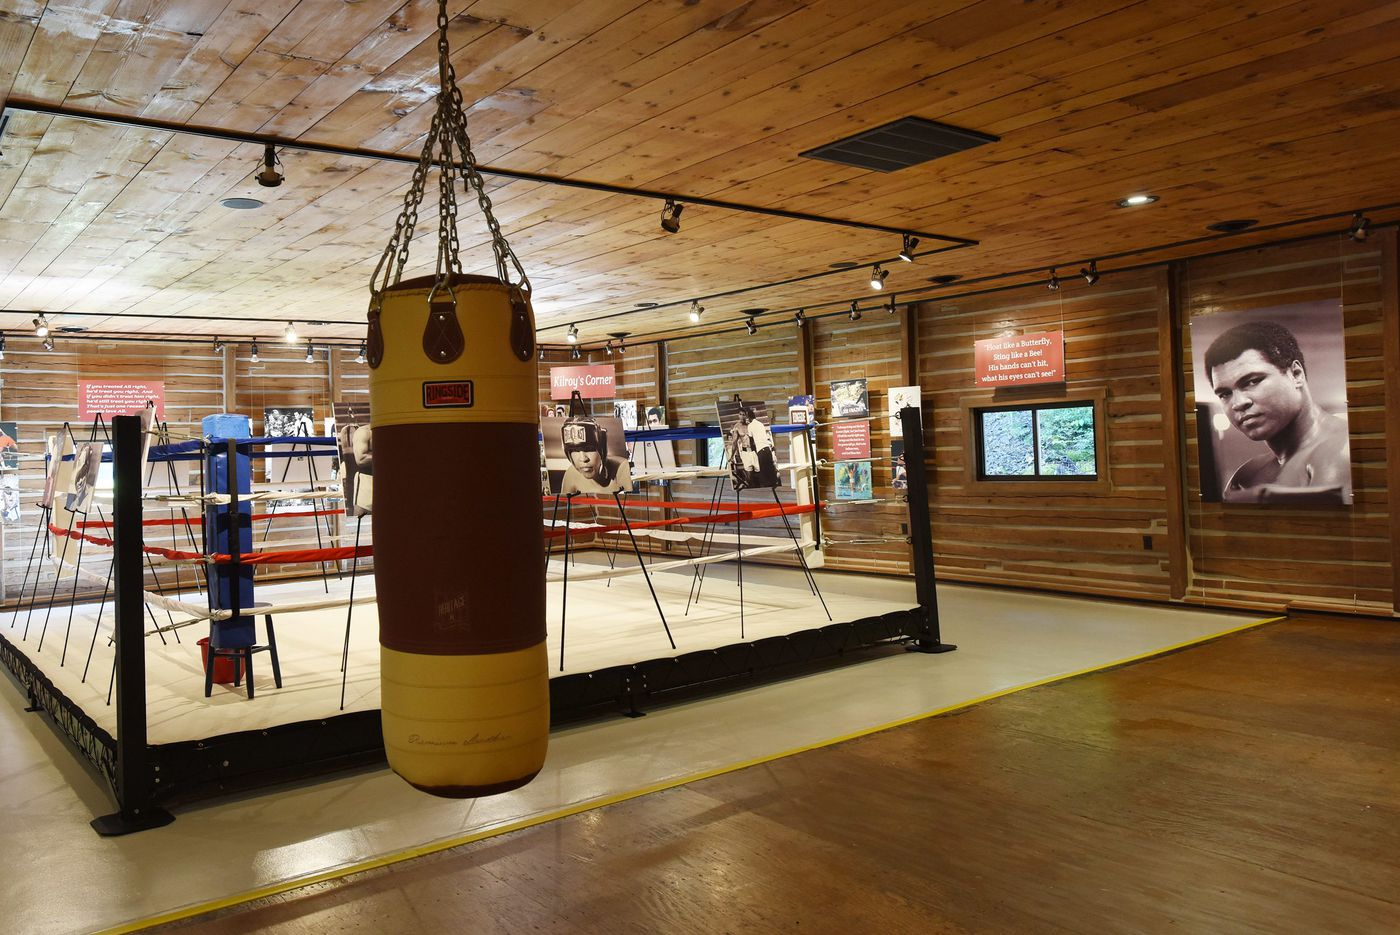 Muhammad Ali's secluded Pa. camp and the fight to save it, led by John Madden's son